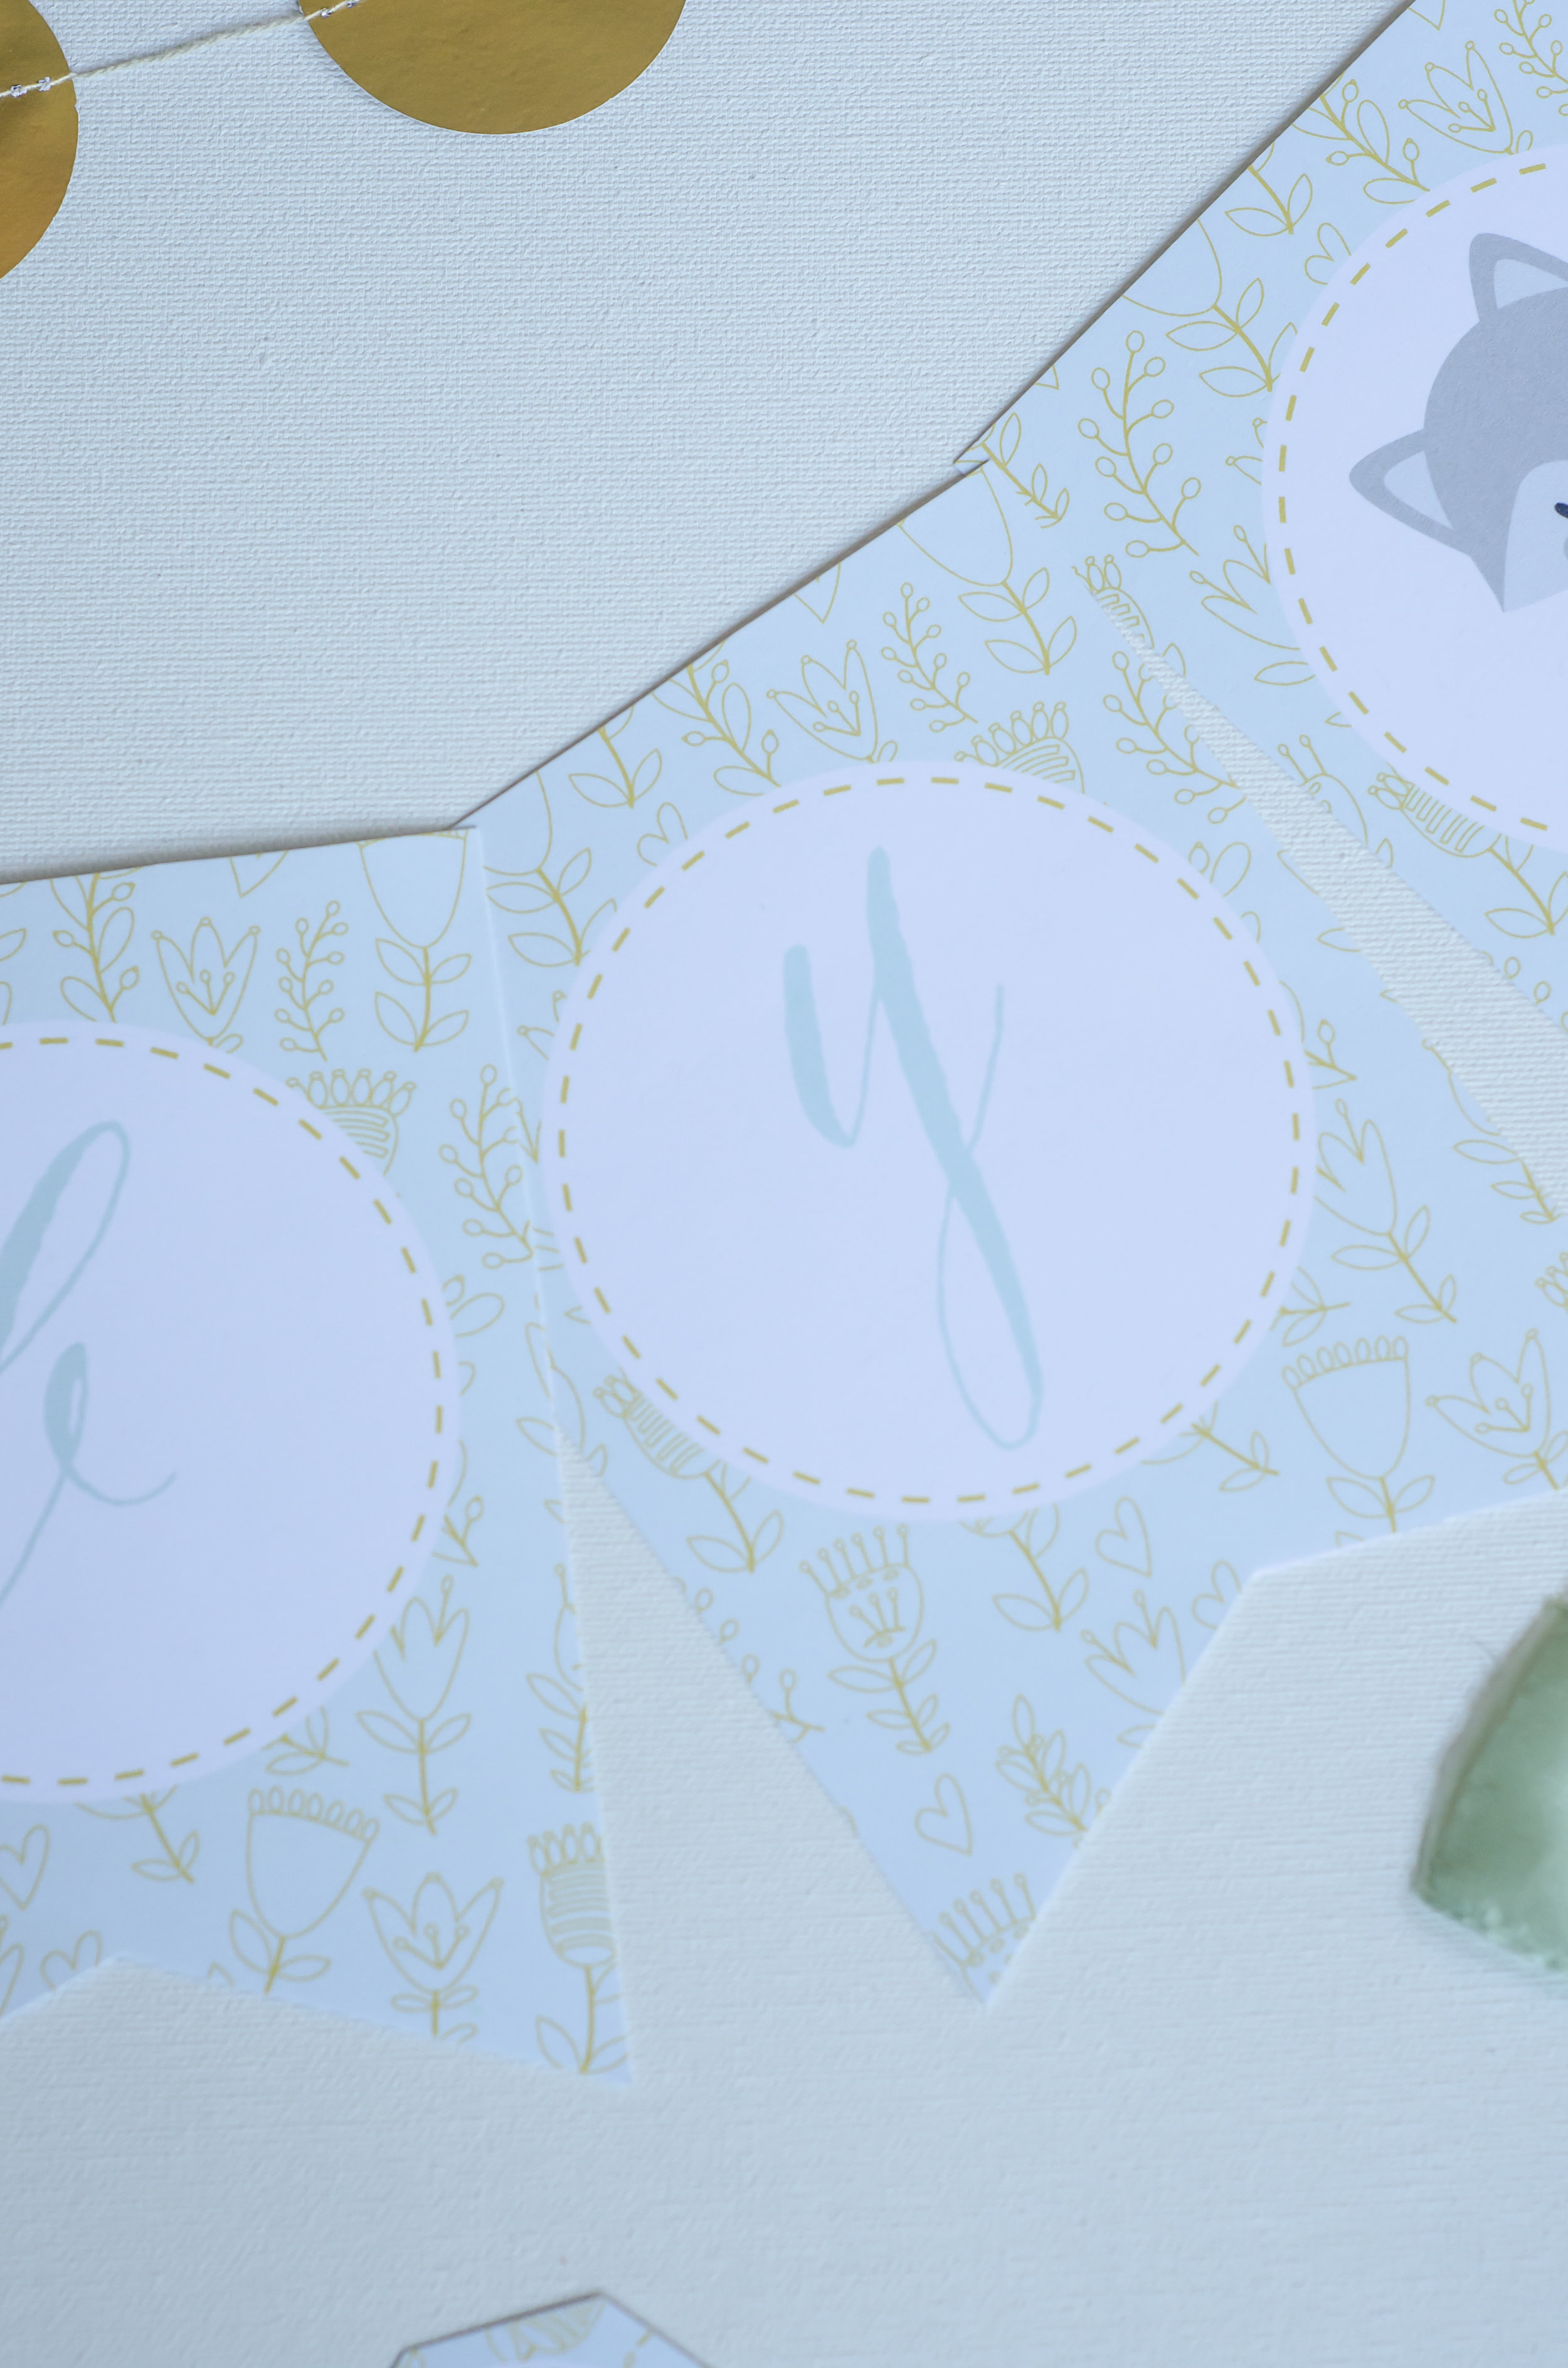 Win these printables from Mint Event Design's birthday giveaway